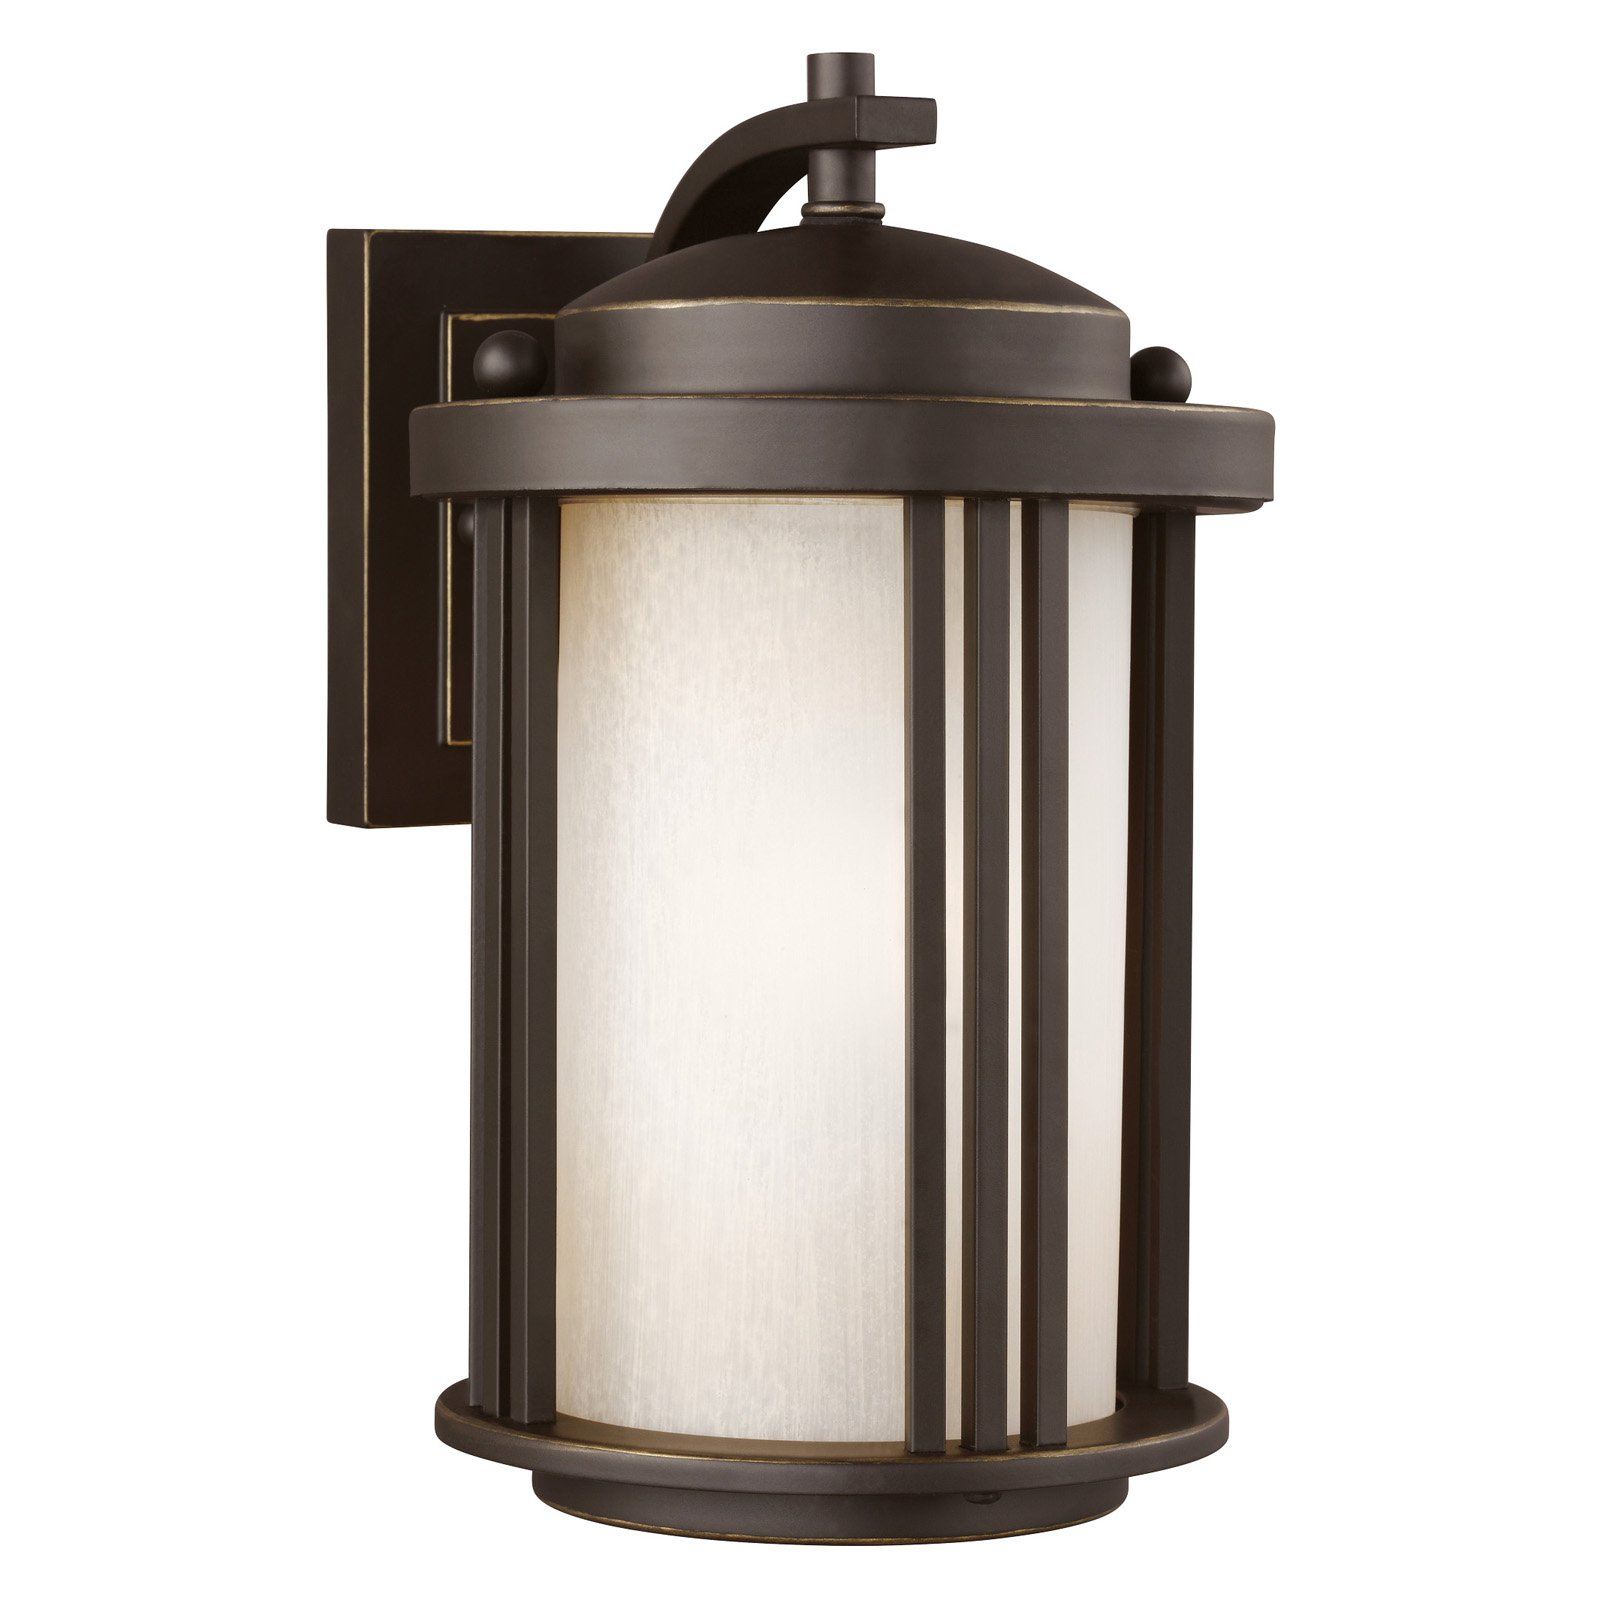 Sea Gull Lighting Crowell 8547901 Outdoor Wall Lantern